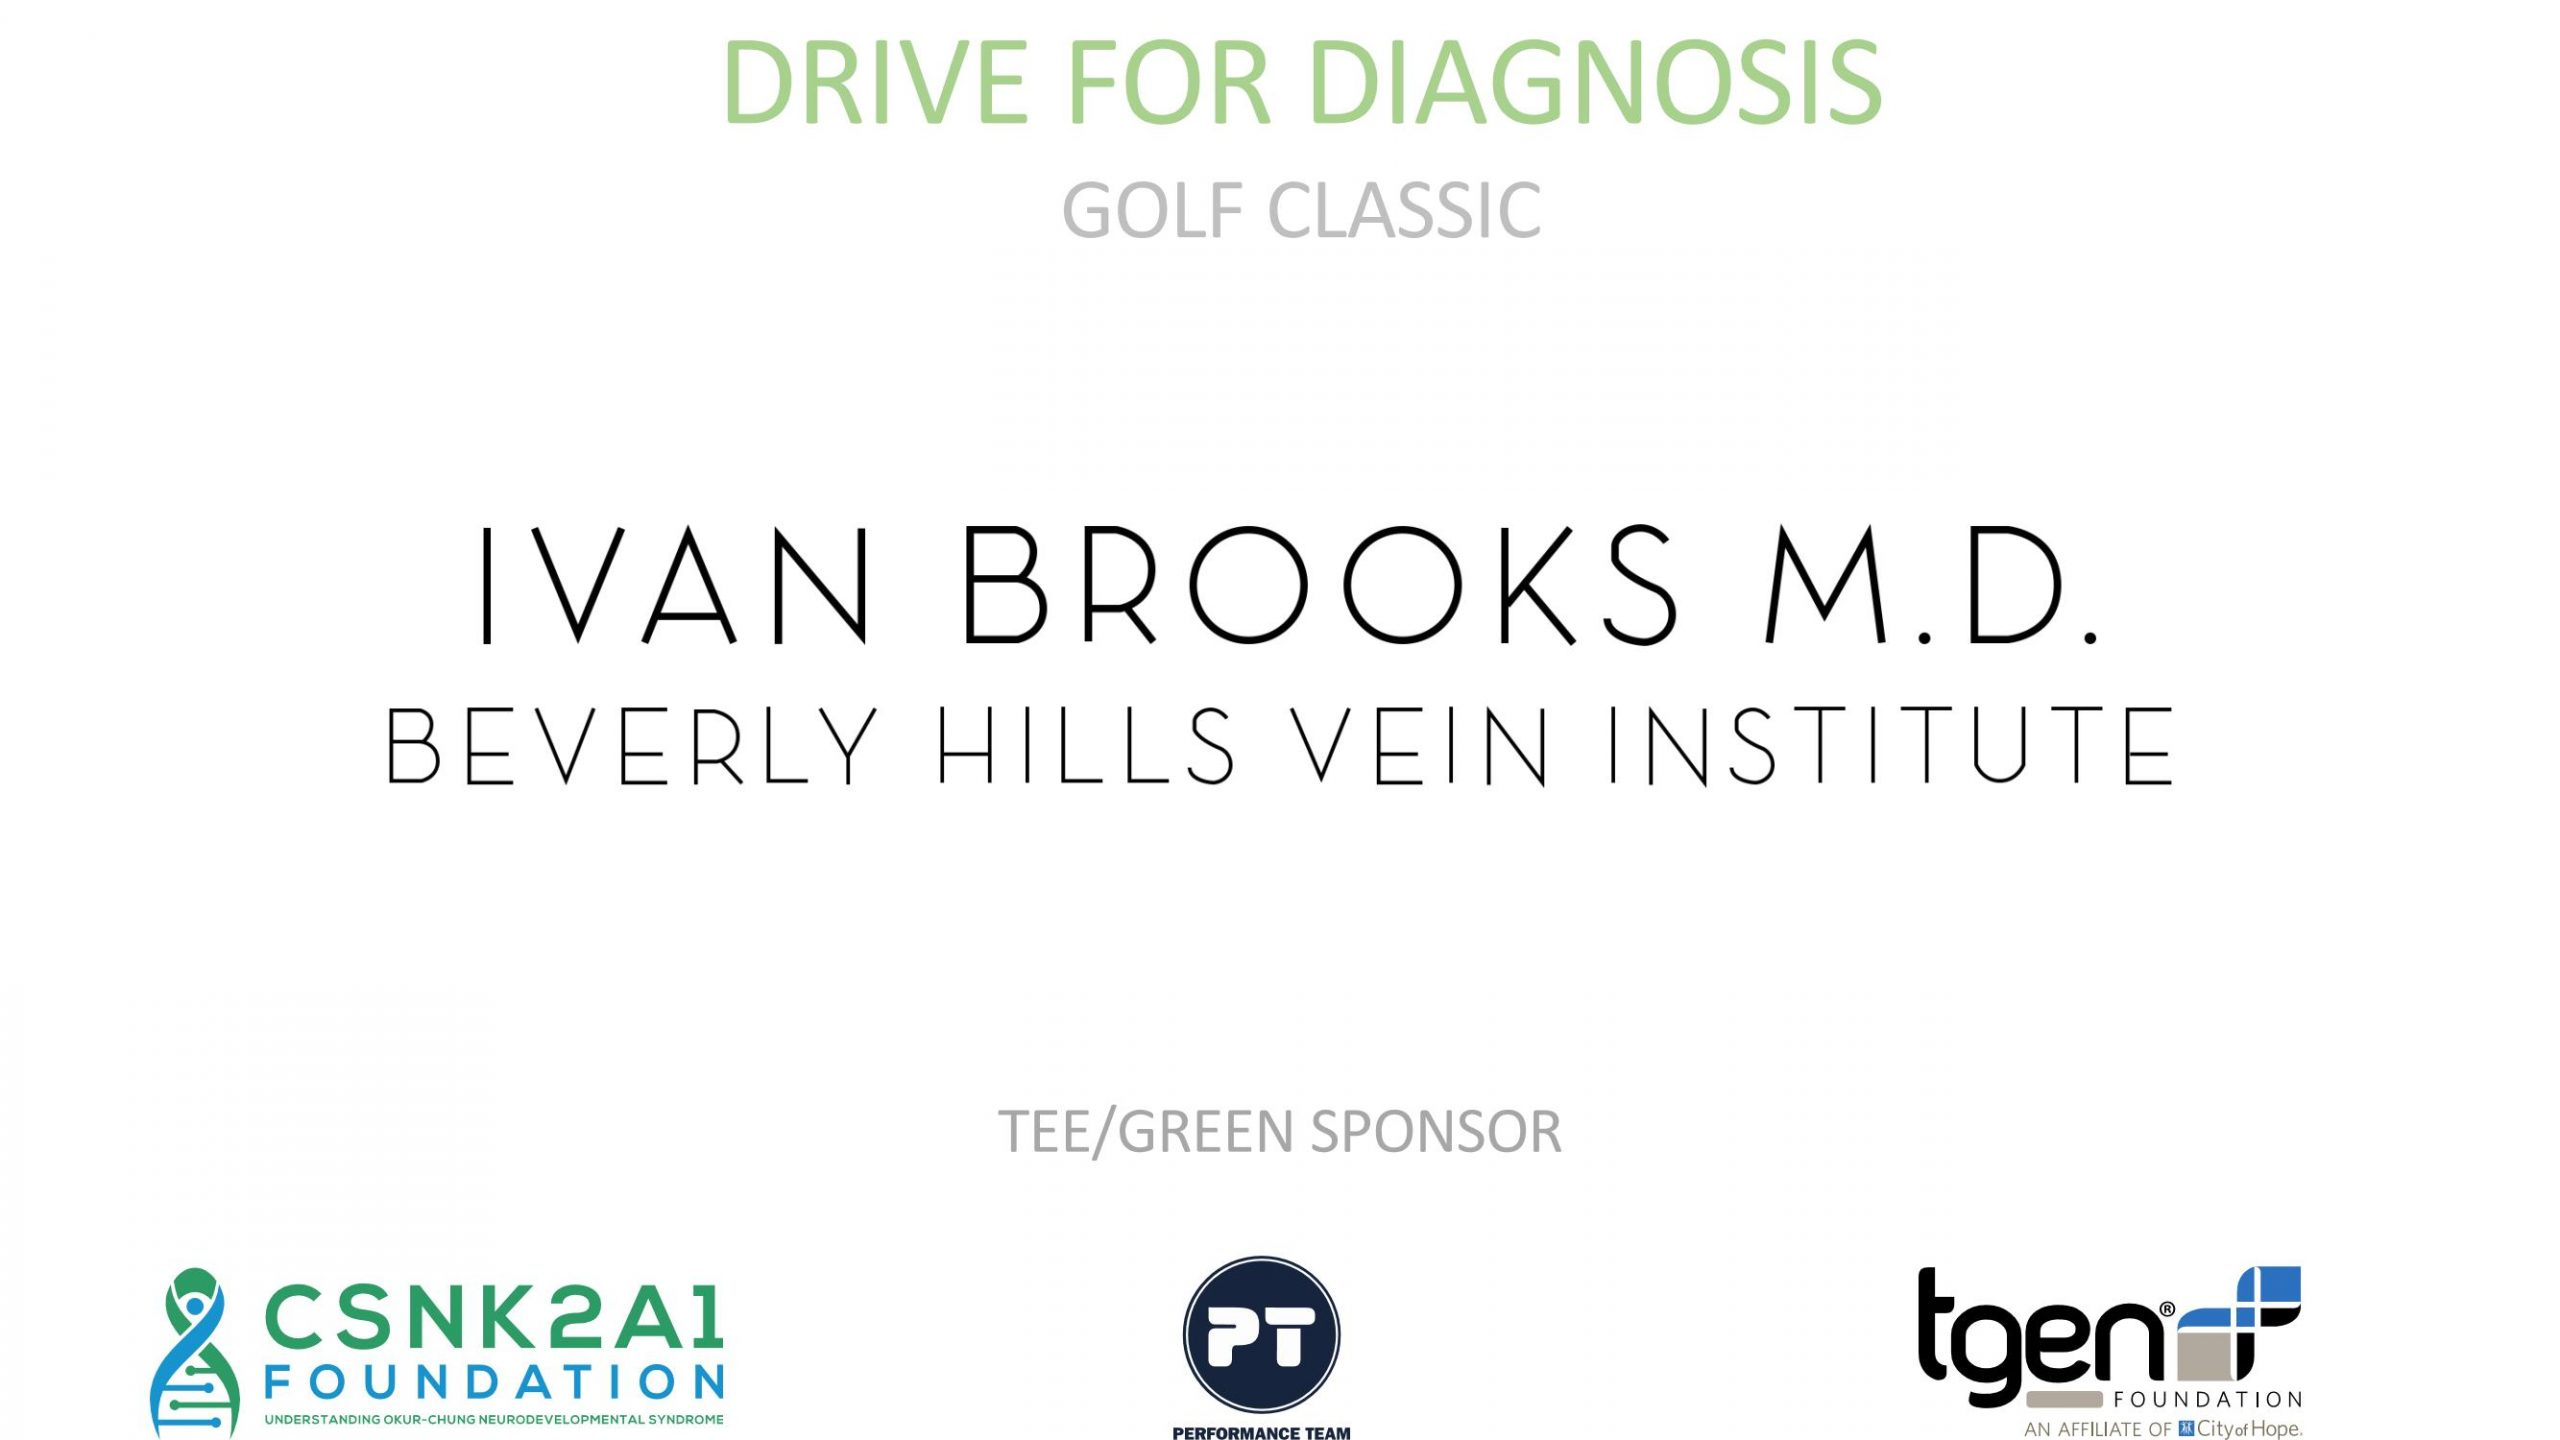 Tee/Green Sponsor - Ivan Brooks M.D. Beverly Hills Vein Institute